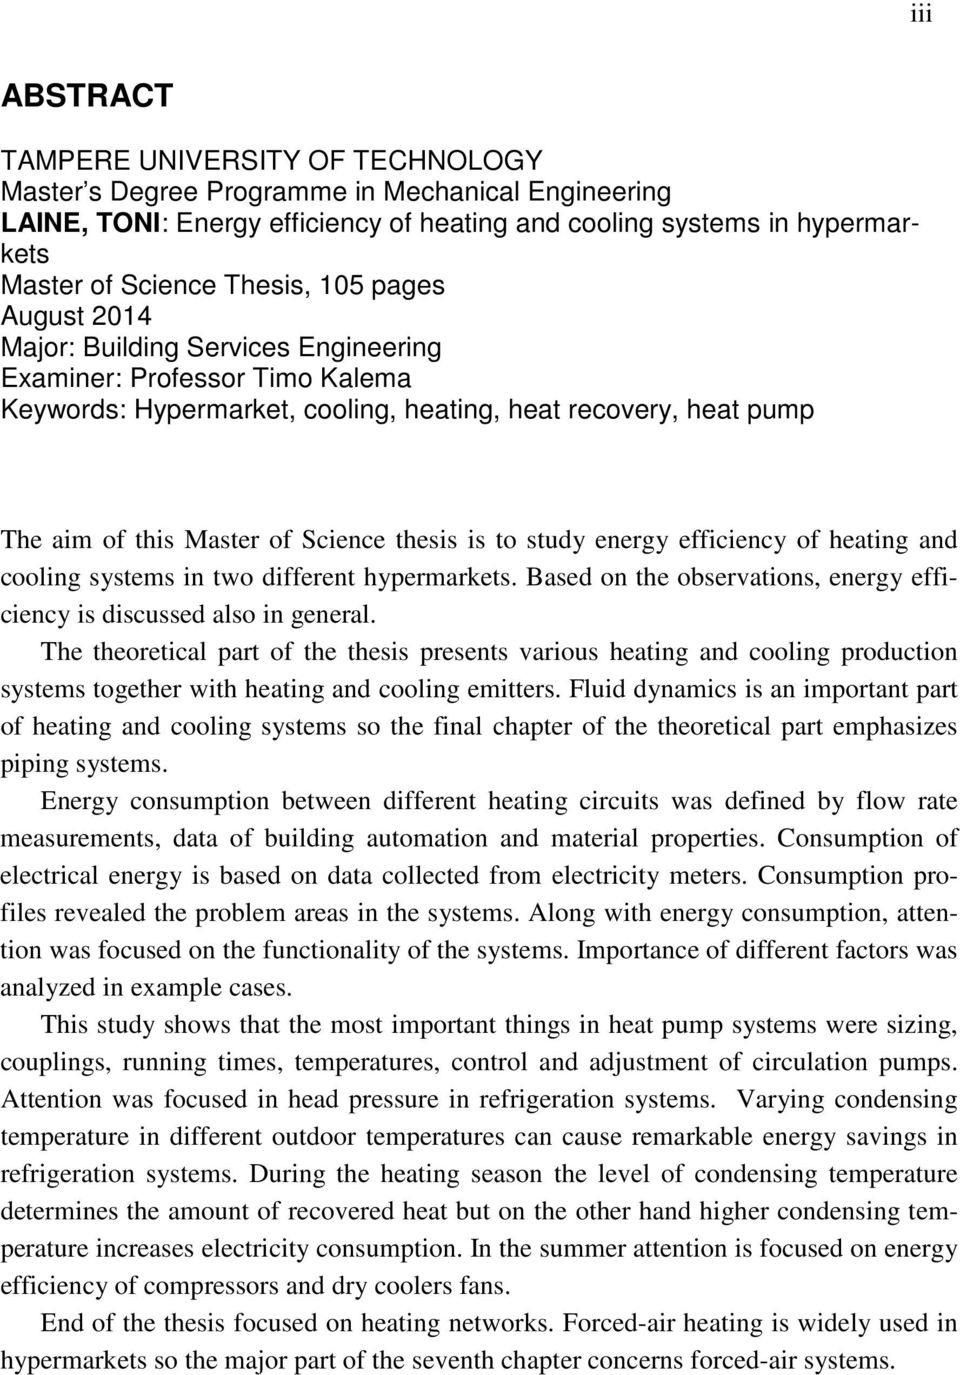 thesis is to study energy efficiency of heating and cooling systems in two different hypermarkets. Based on the observations, energy efficiency is discussed also in general.